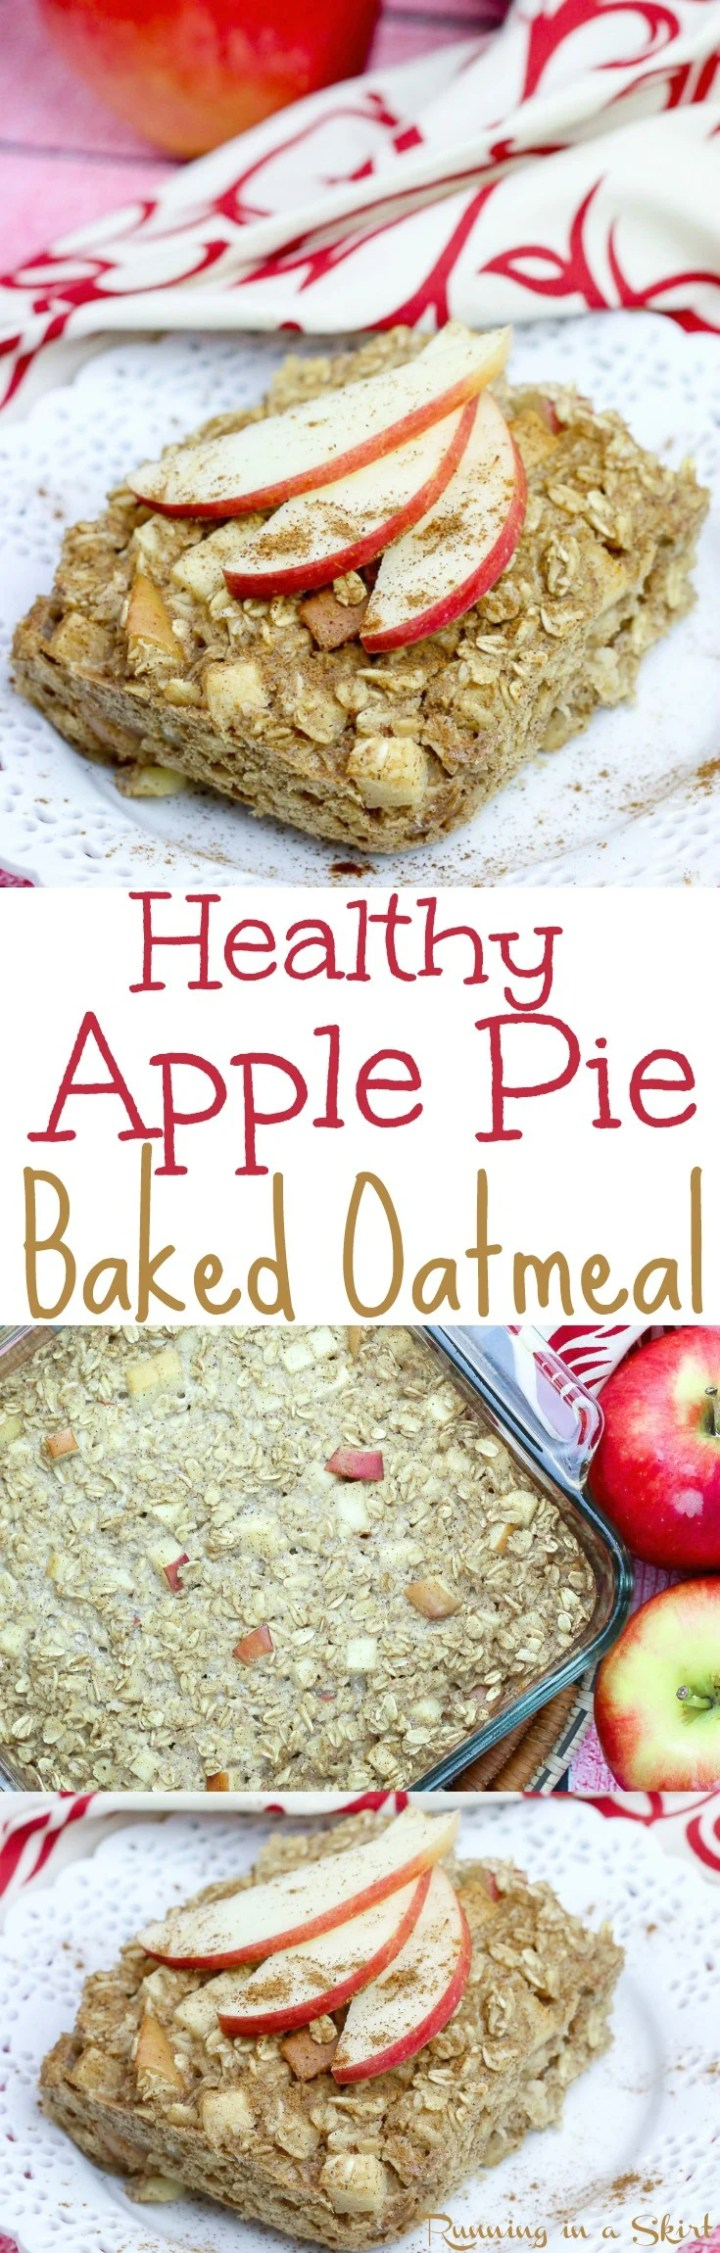 Healthy Apple Pie Baked Oatmeal recipe. The perfect clean eating apple baked oatmeal for fall morning! Easy and delicious using rolled oats, eggs, cinnamon and apple sauce! Dairy-free and gluten-free friendly. / Running in a Skirt via @juliewunder